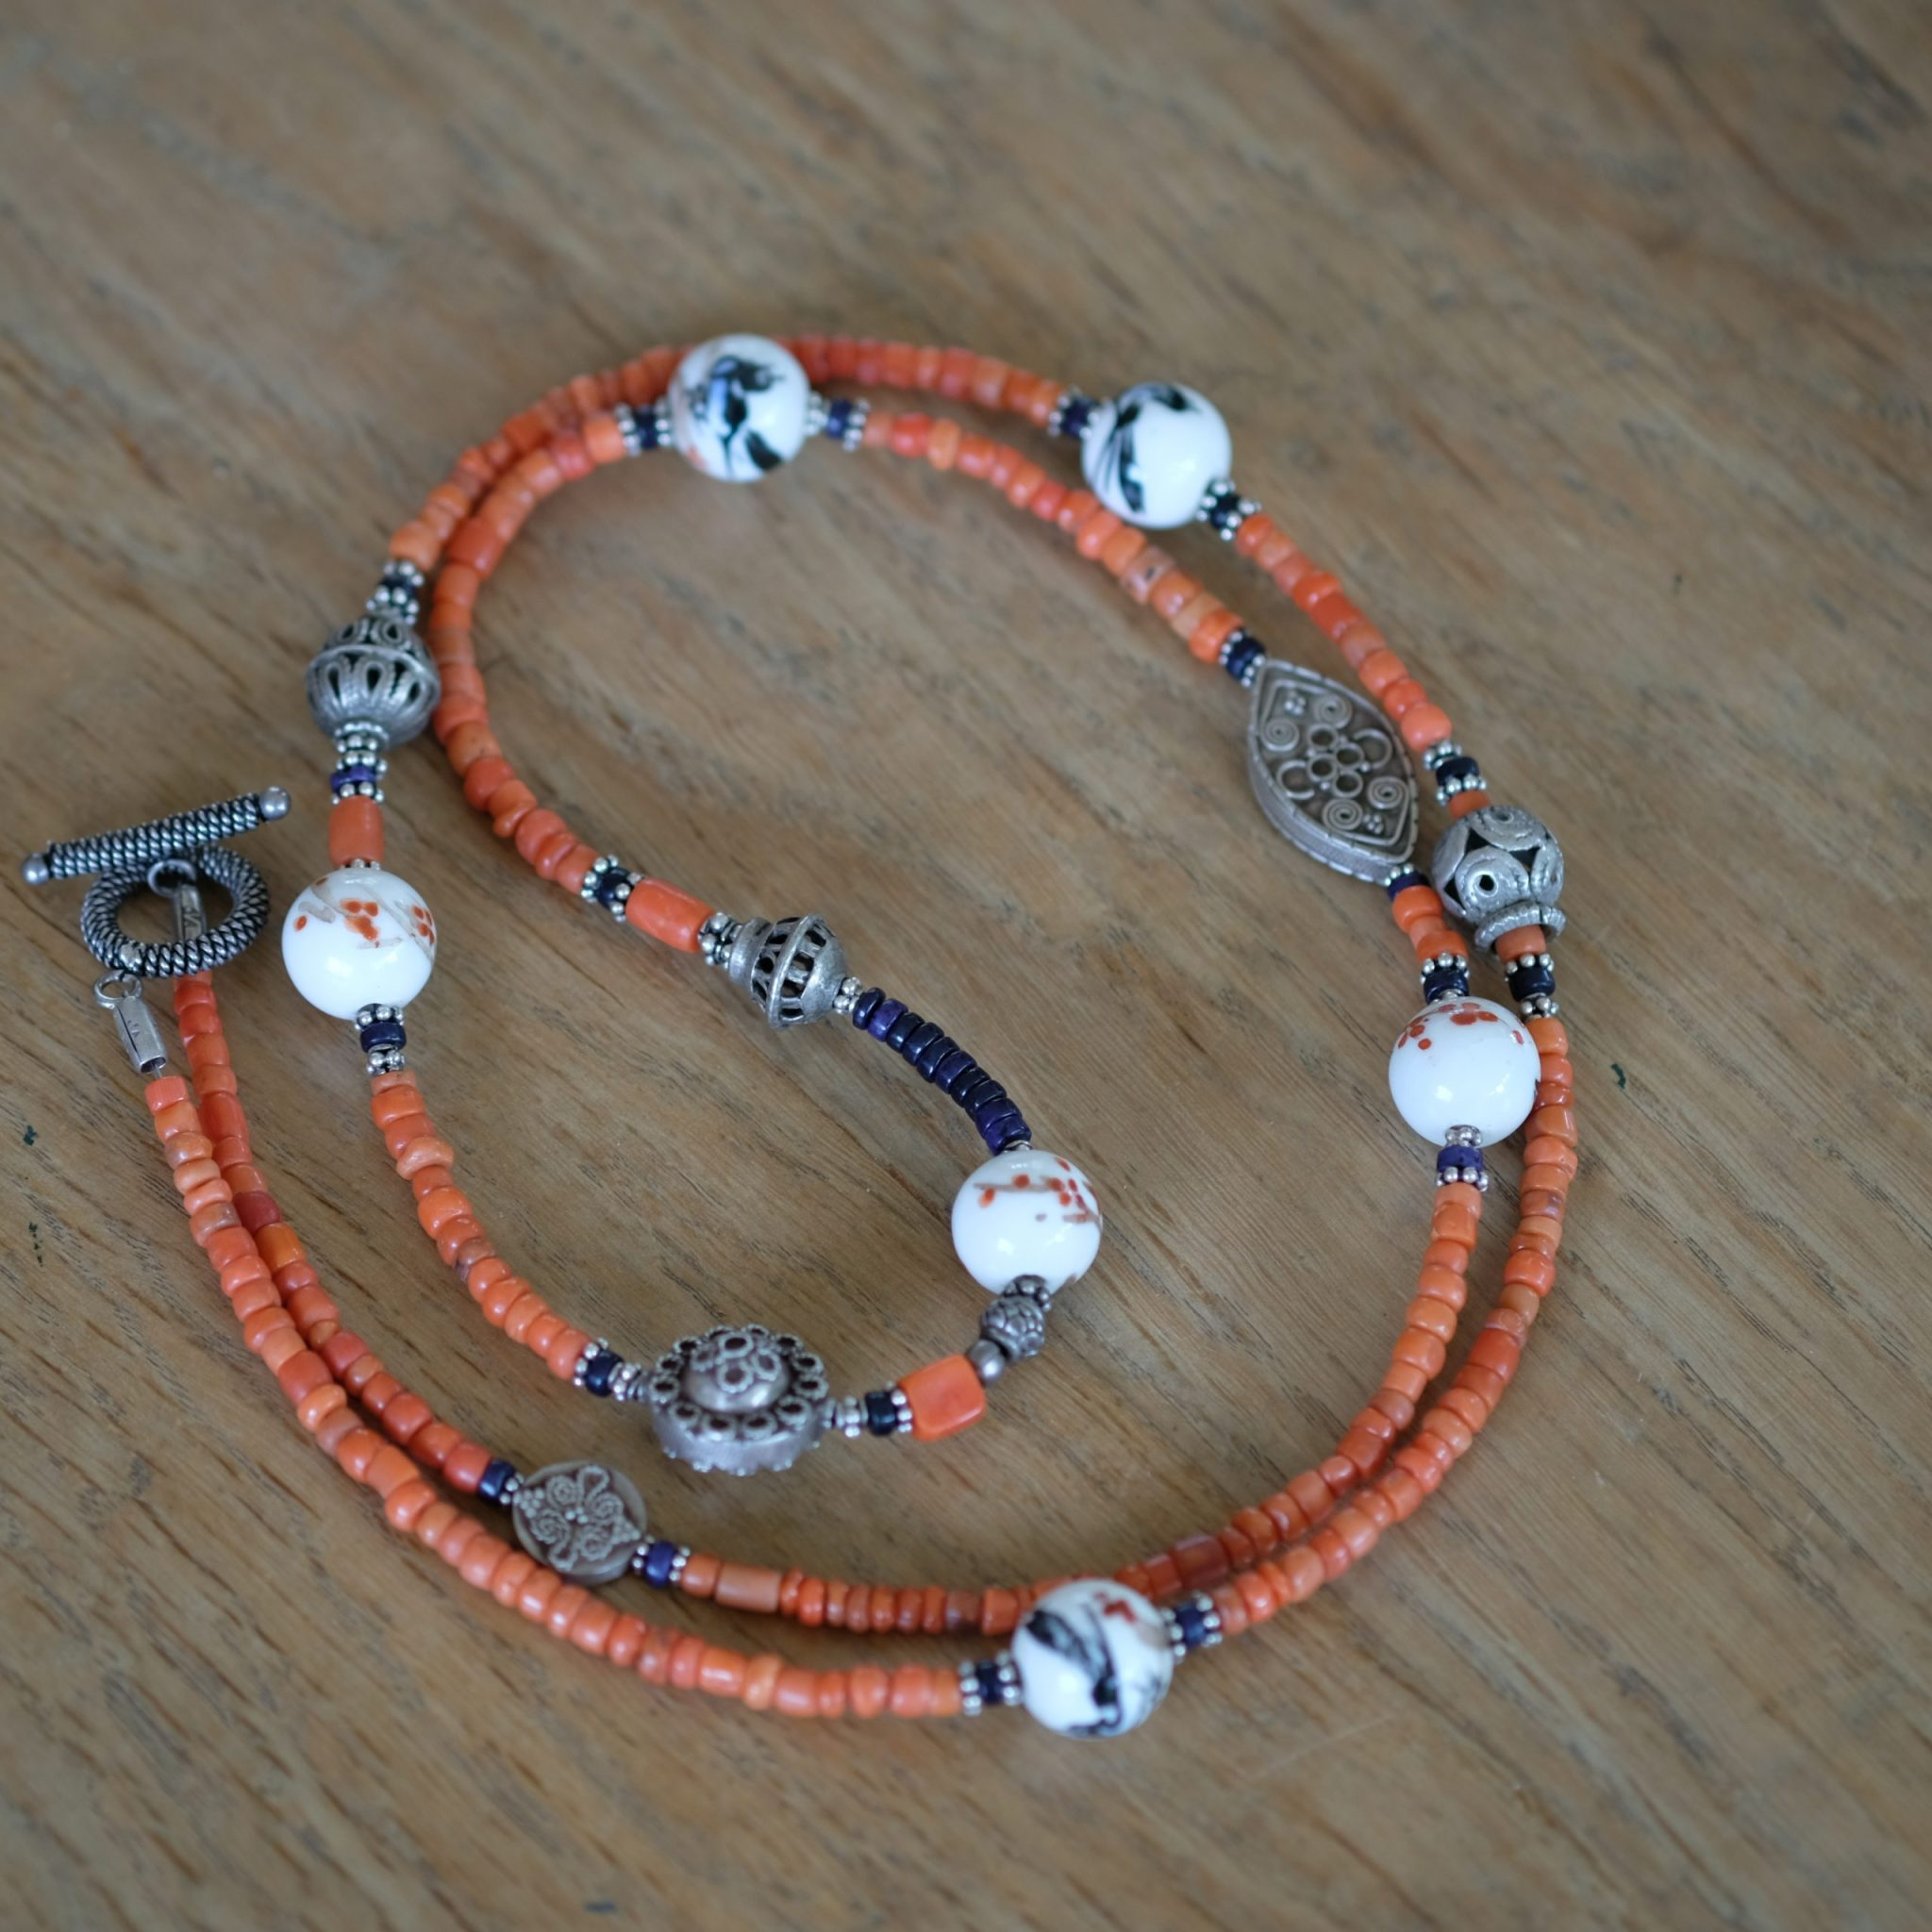 necklace of old coral from Zeeland, old Chinese porcelain beads